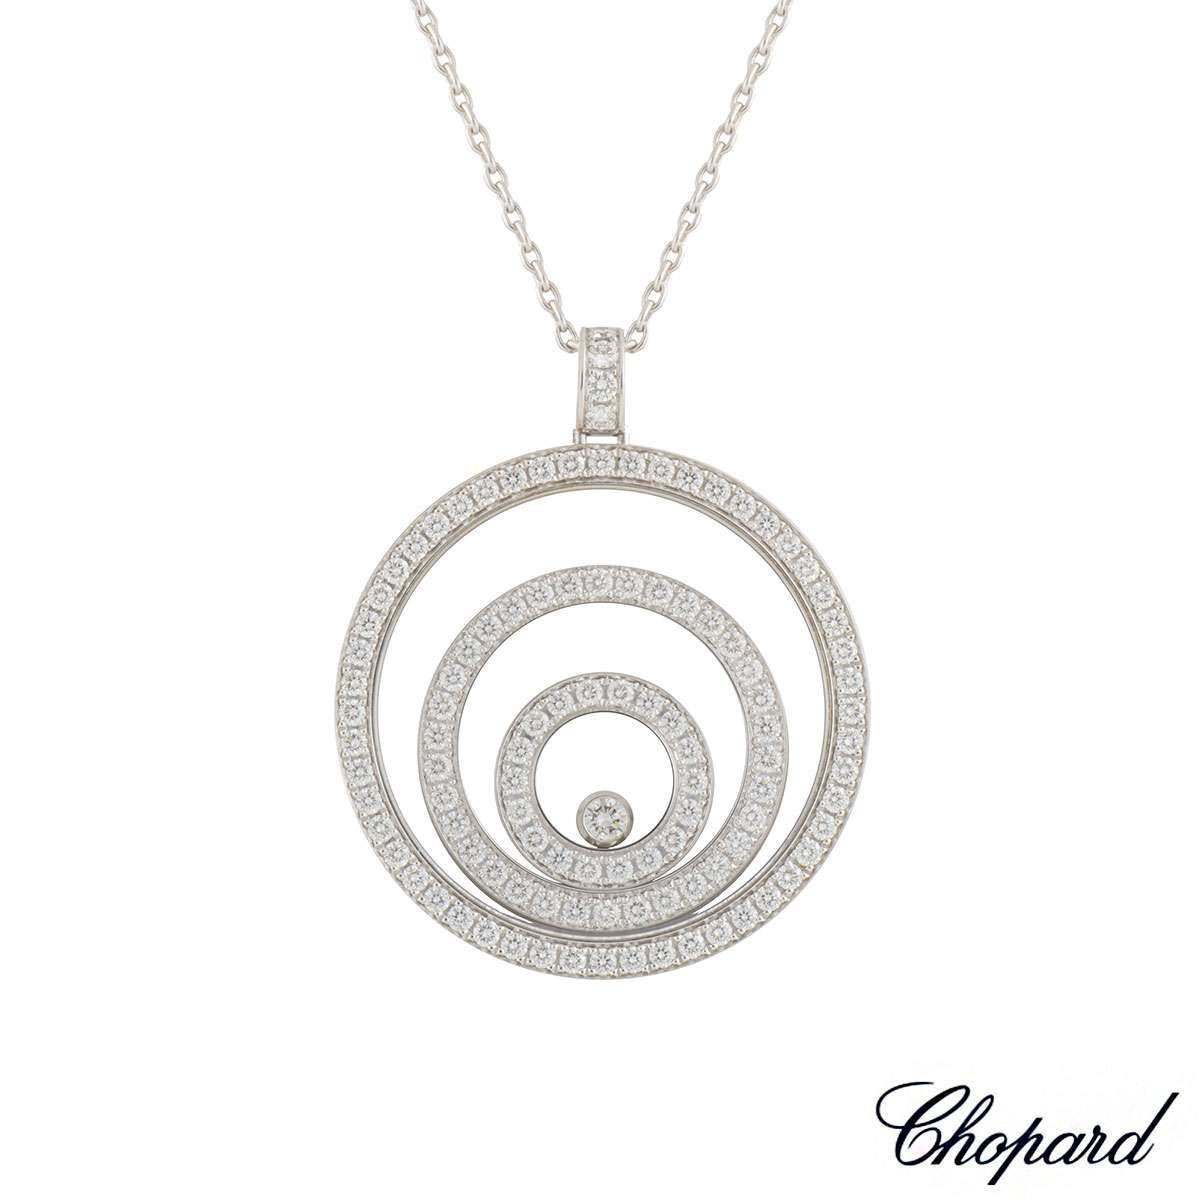 Chopard happy spirit diamond pendant 7954230 20 rich diamonds chopard happy spirit diamond pendant 7954230 20 mozeypictures Choice Image